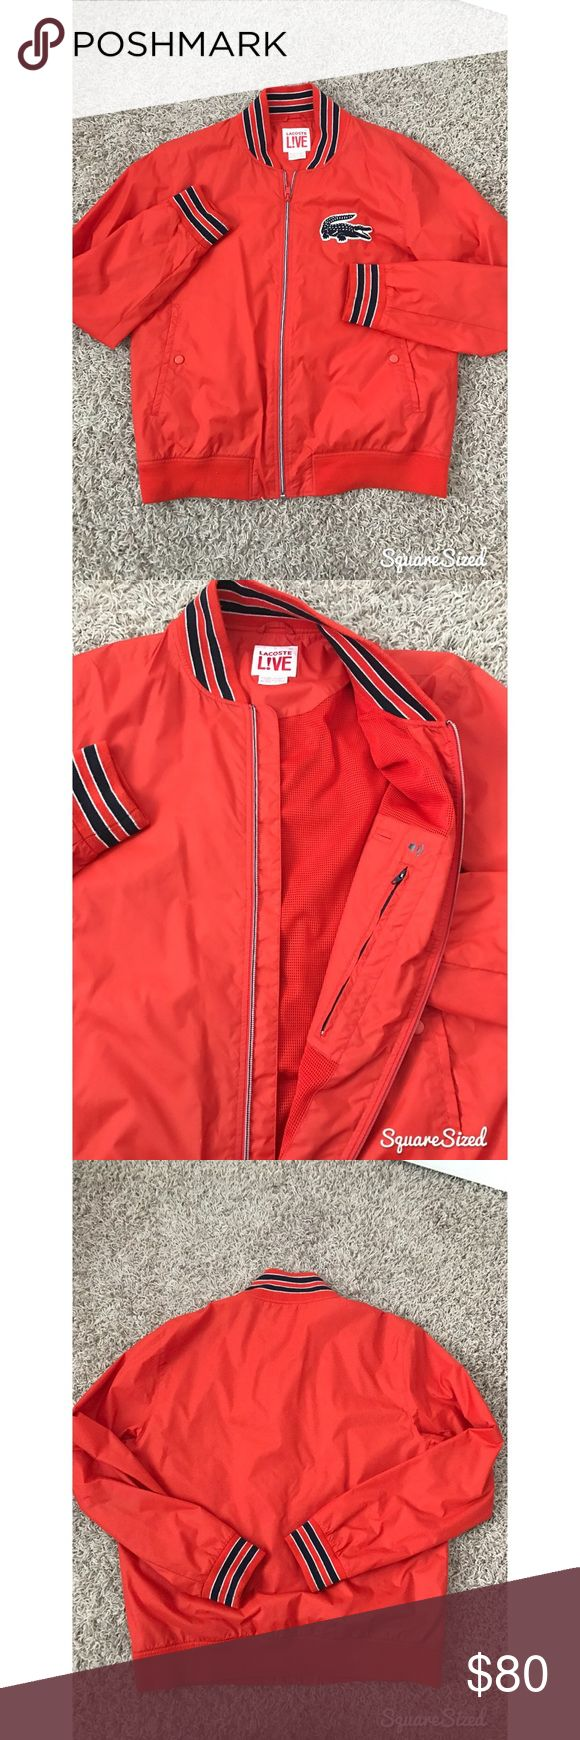 Bright Orange Lacoste Bomber Jacket Perfect condition! Worn a few times but it looks brand new! This is a slim fit jacket! Lacoste Jackets & Coats Bomber & Varsity